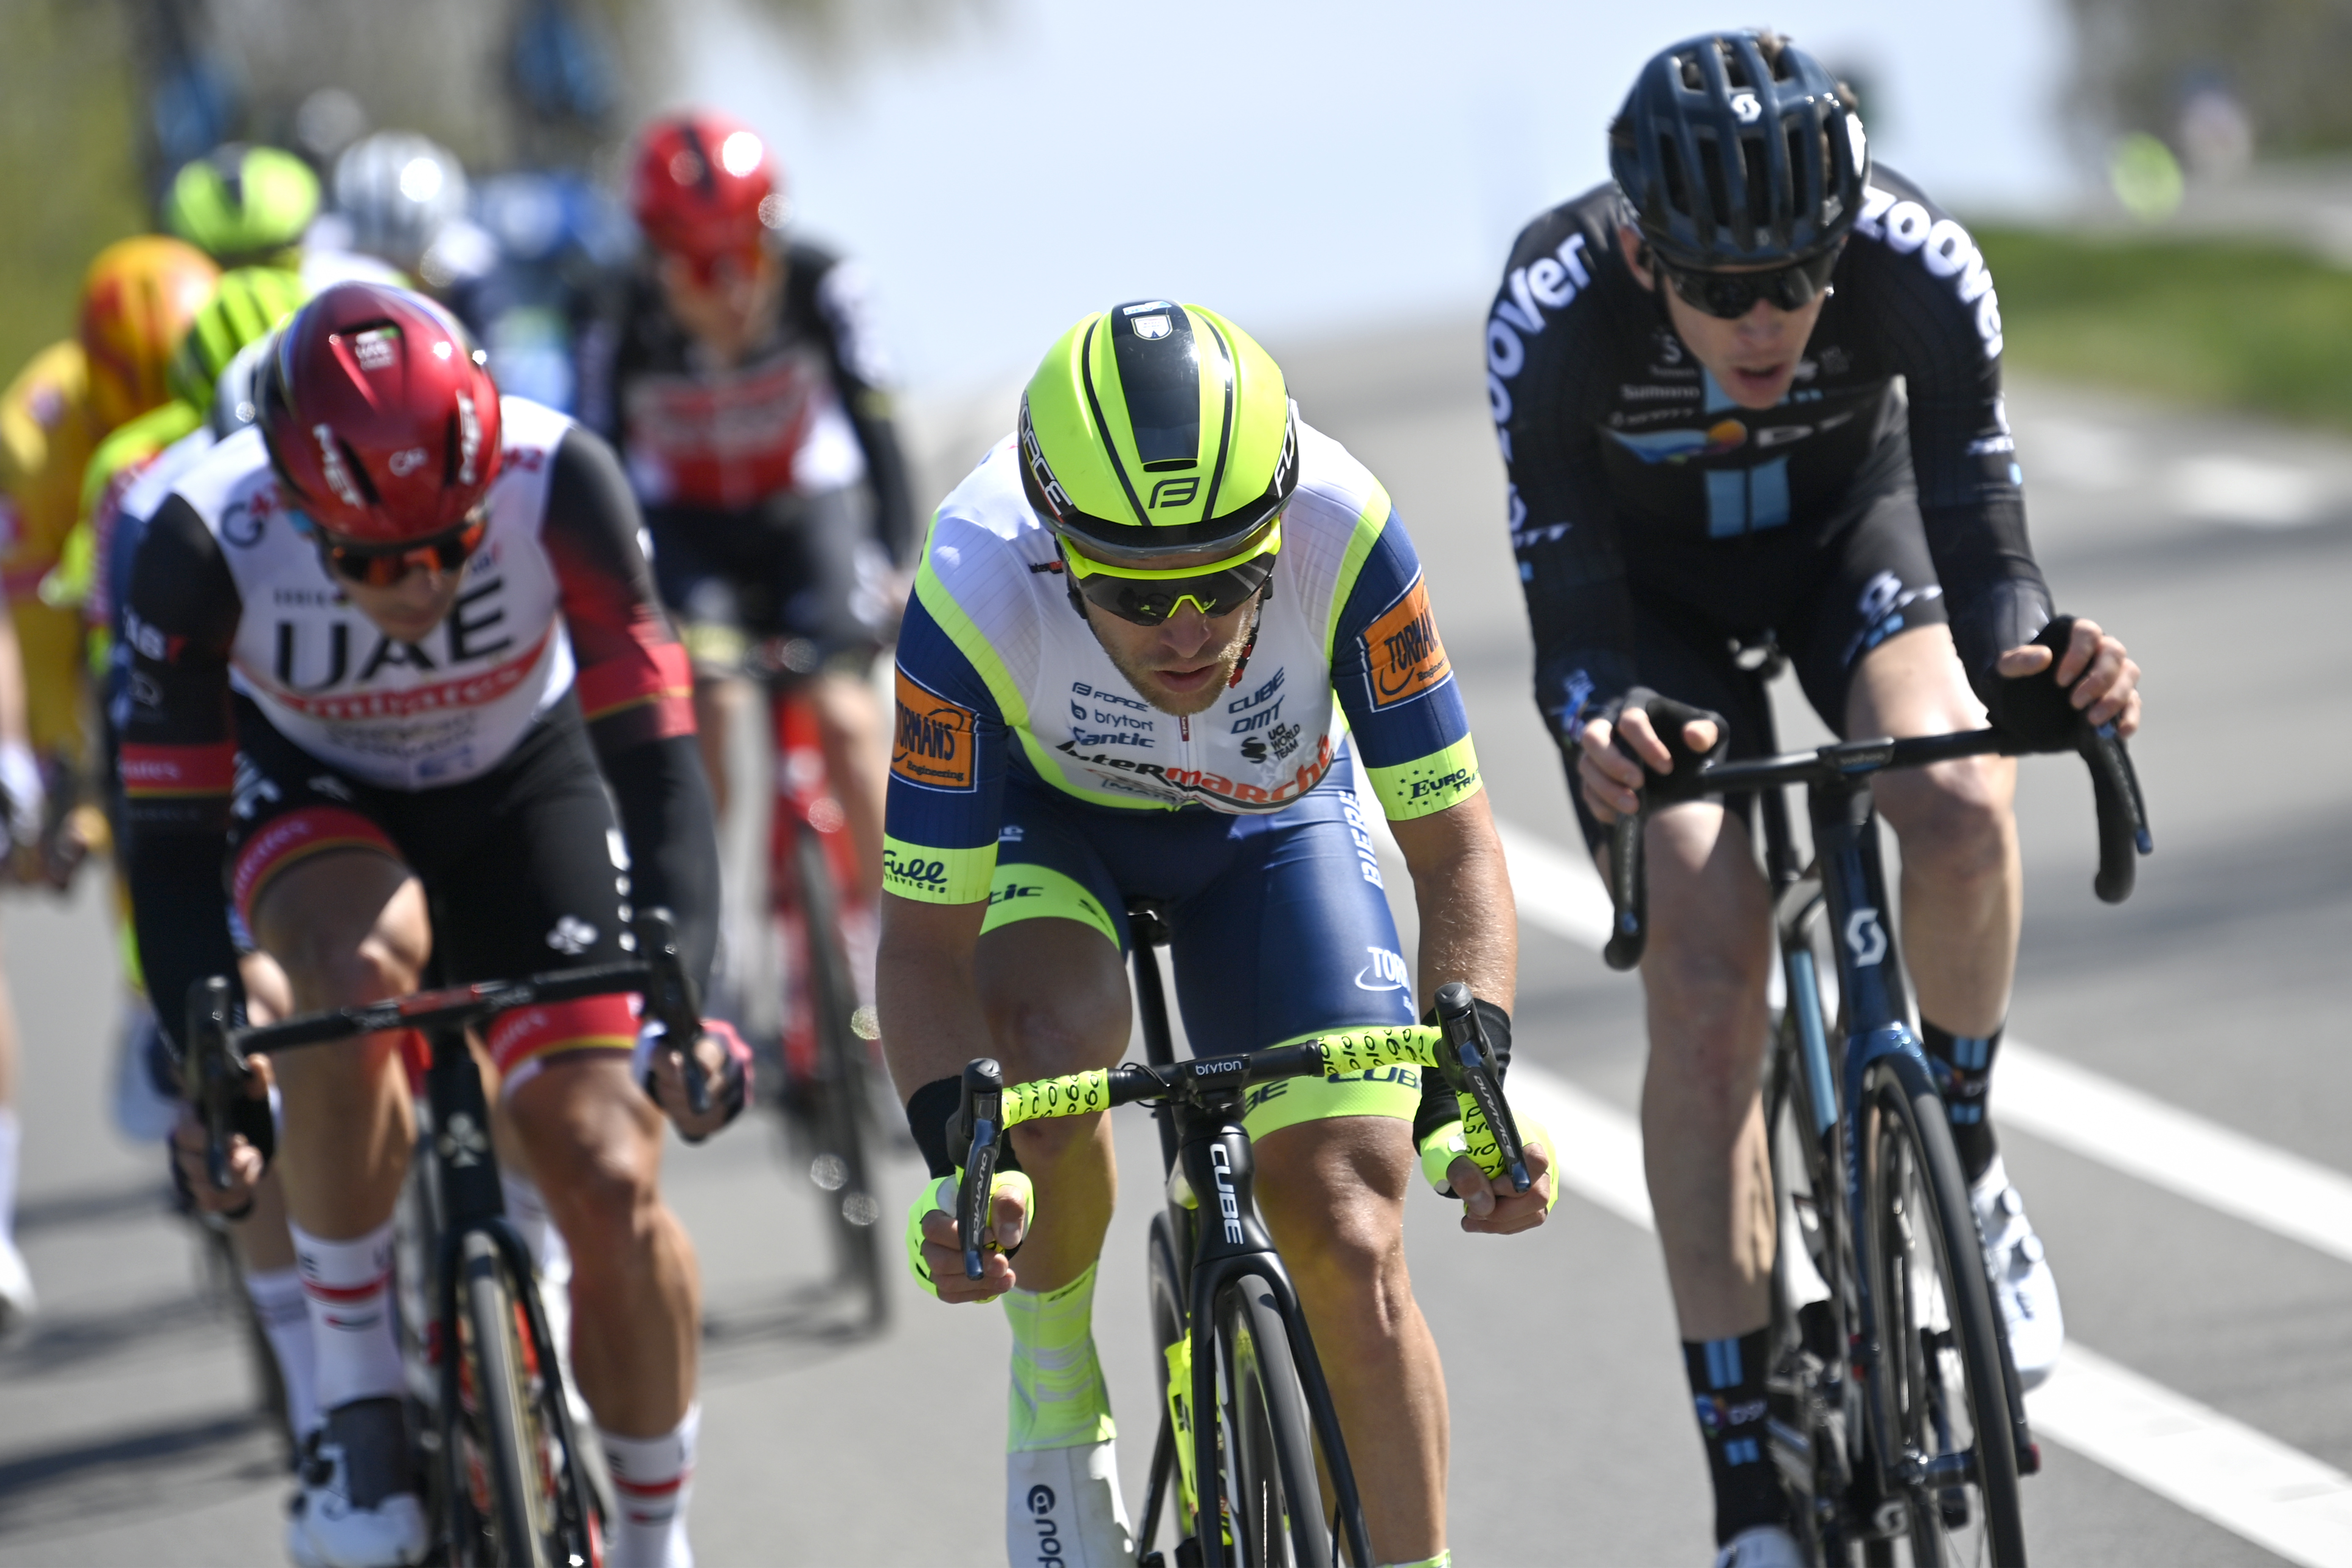 Dutch Maurits Lammertink of Intermarche WantyGobert Materiaux pictured in action during the men elite Amstel Gold Race one day cycling race 21836 km from Valkenburg to Berg en Terblijt The Netherlands Sunday 18 April 2021 BELGA PHOTO ERIC LALMAND Photo by ERIC LALMANDBELGA MAGAFP via Getty Images